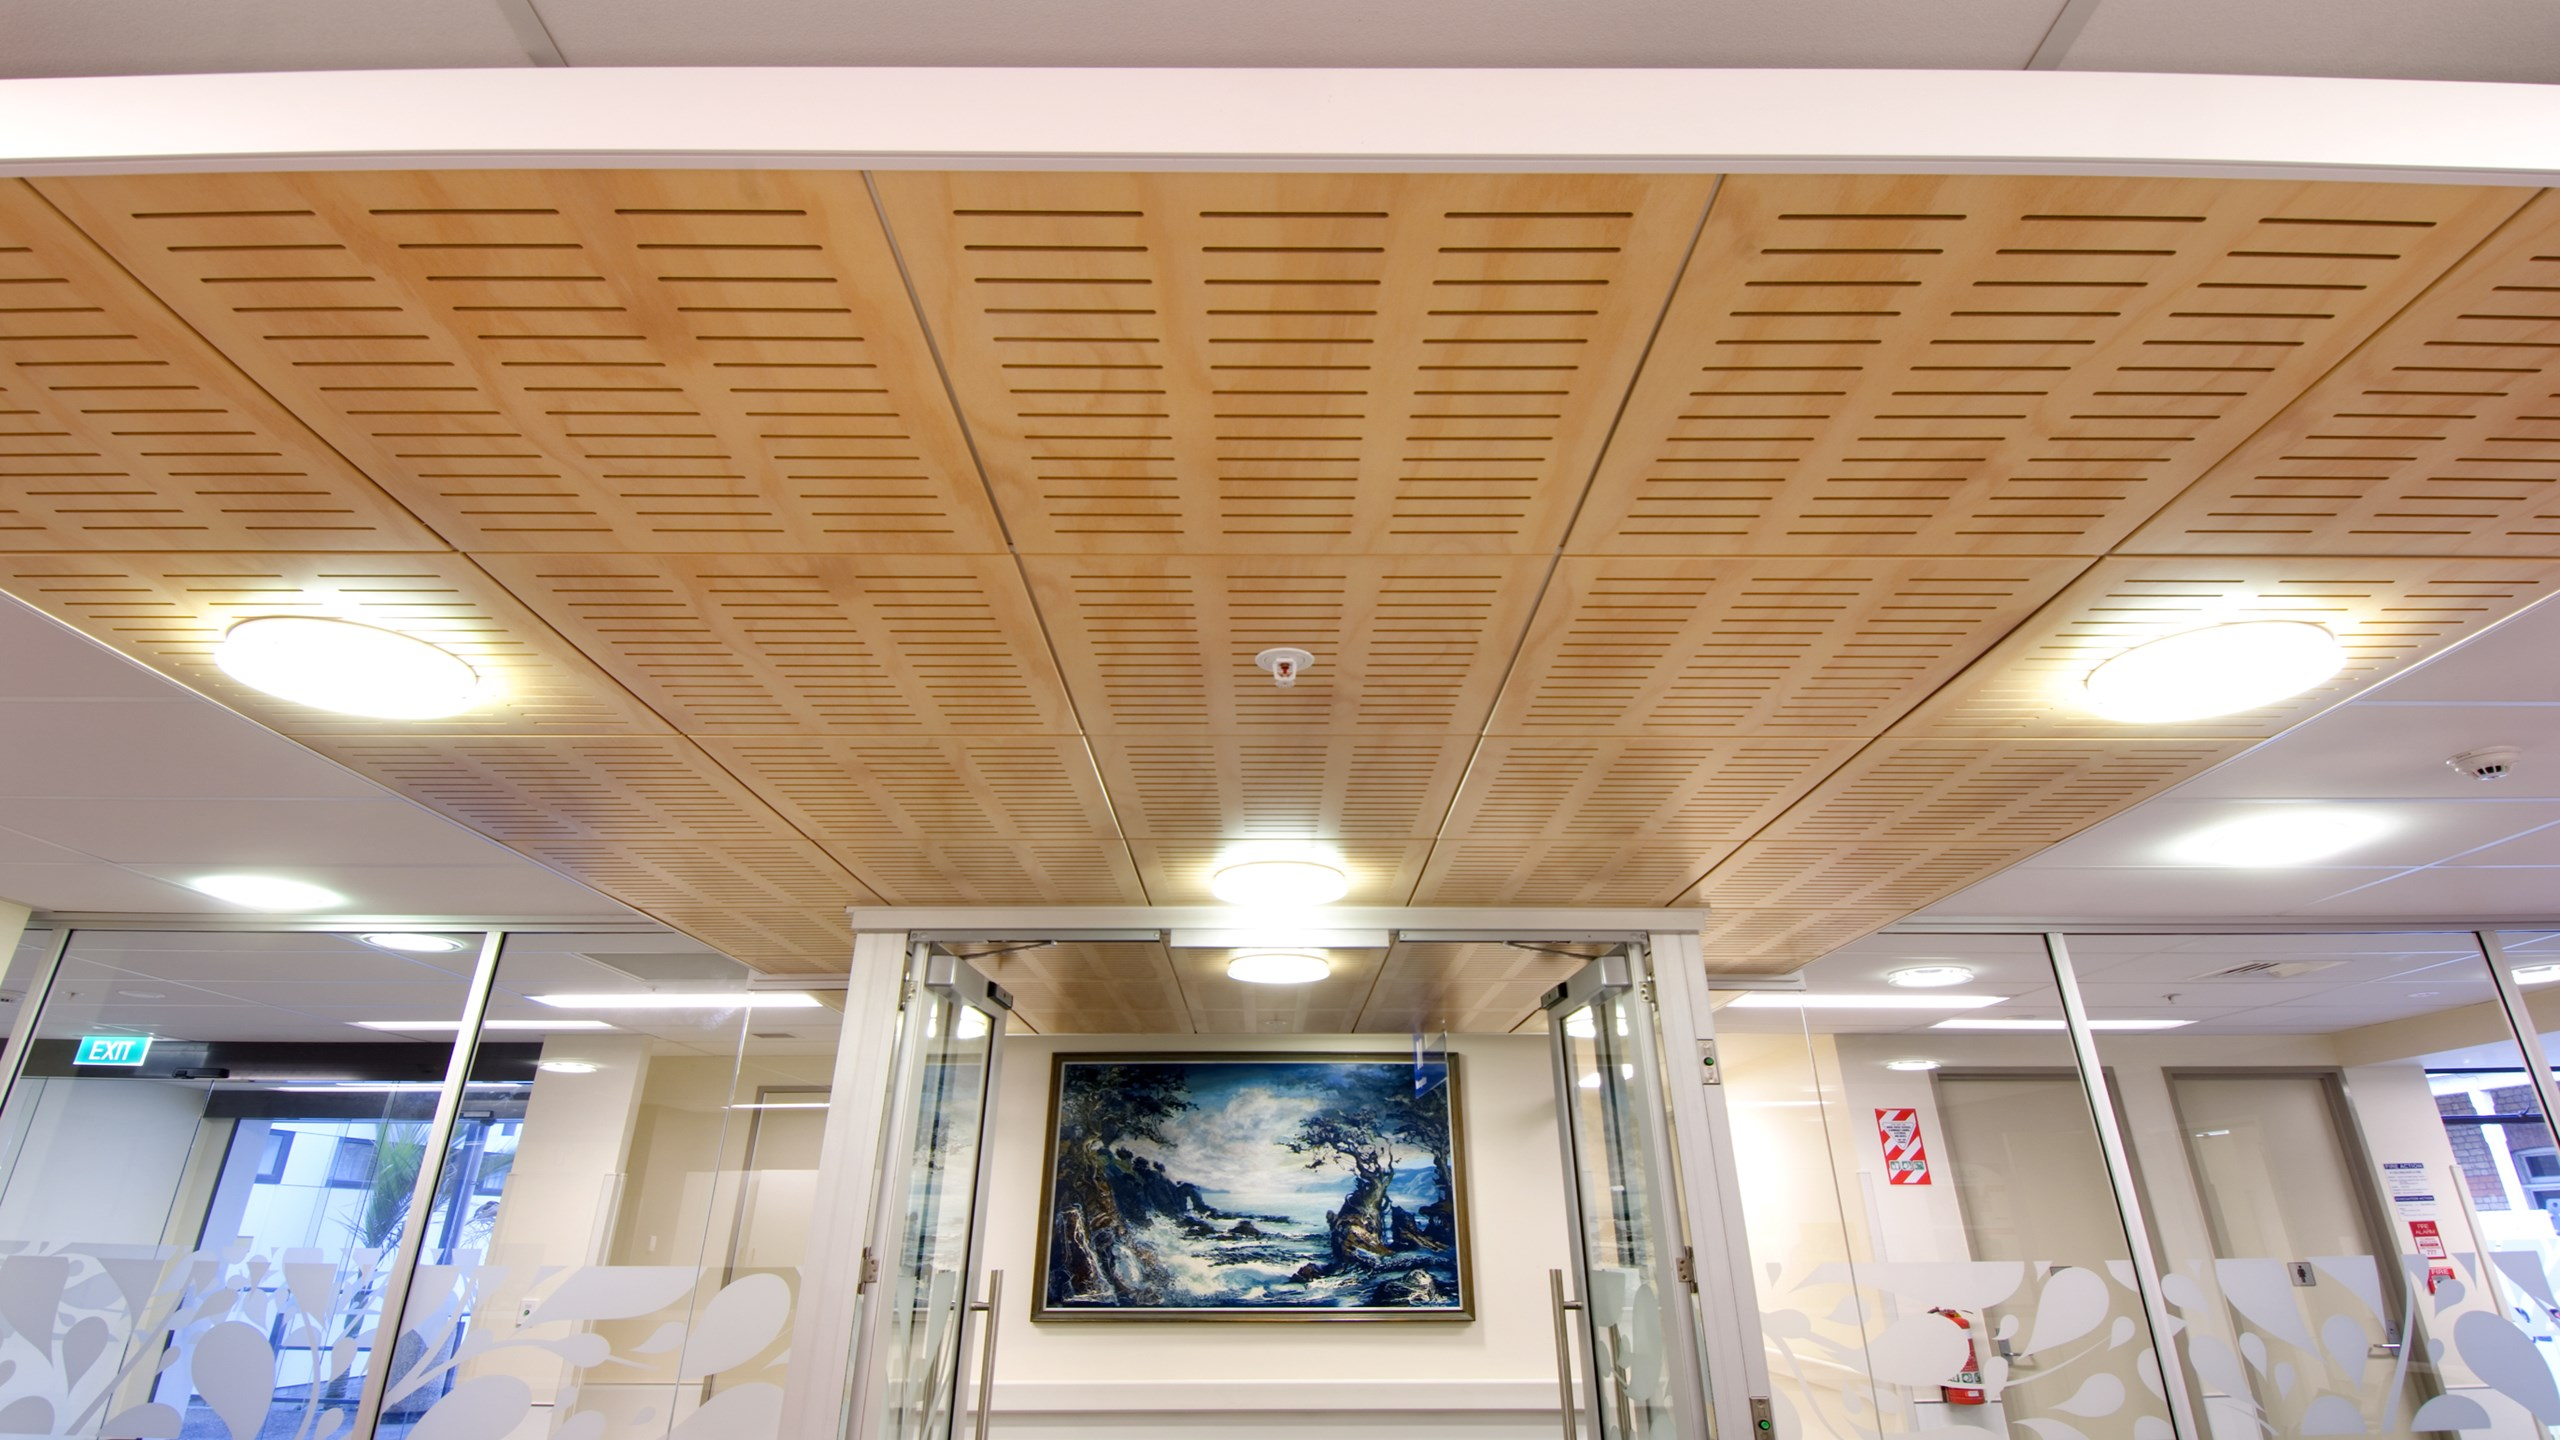 Greenlane Eye Clinic - Asona Tile in Hoop Pine veneer